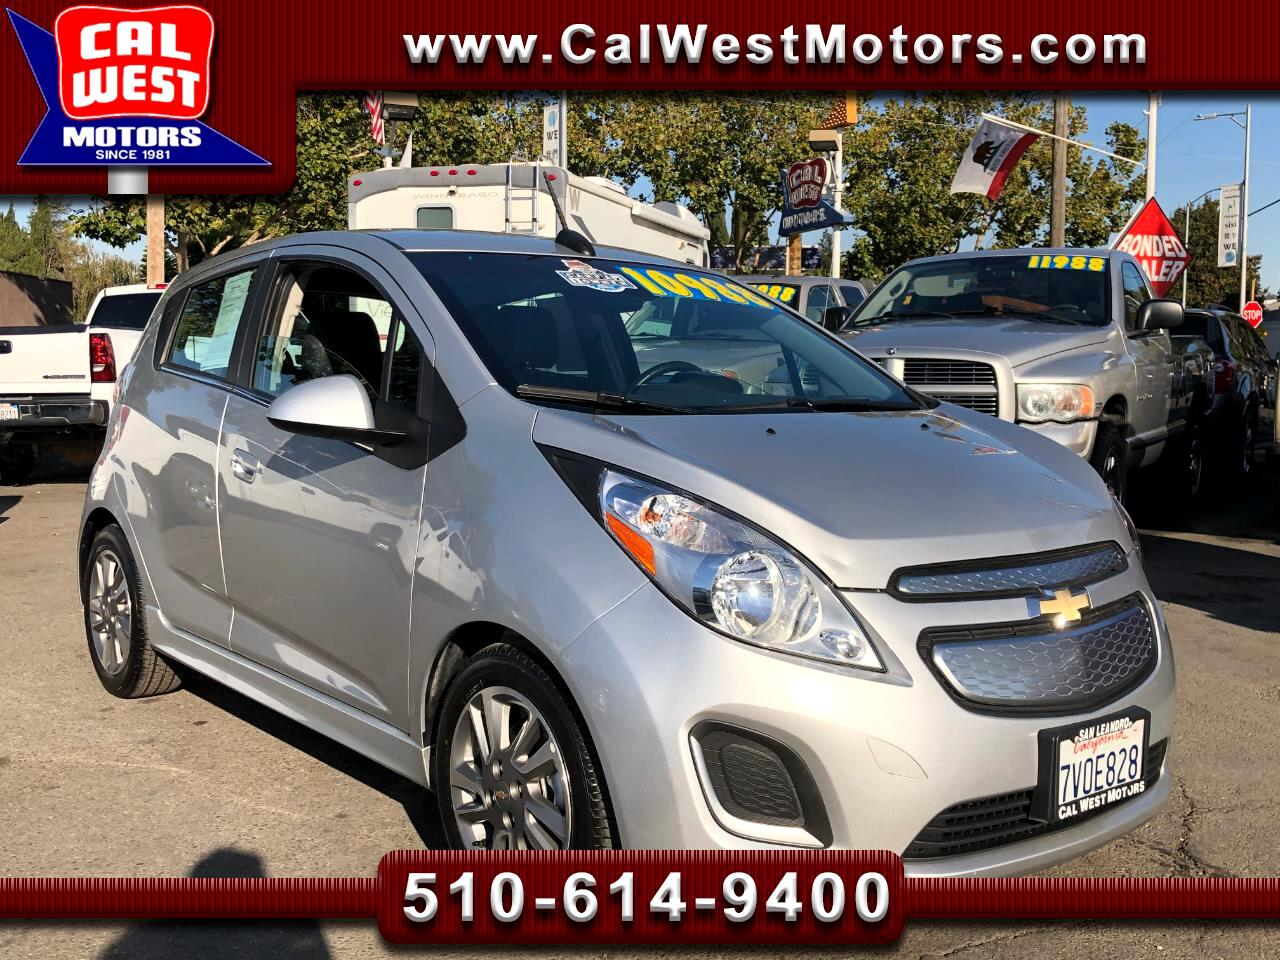 2016 Chevrolet Spark EV 2LT Electric Sdn Blu2th AUX 1Owner GMWarranty Nice